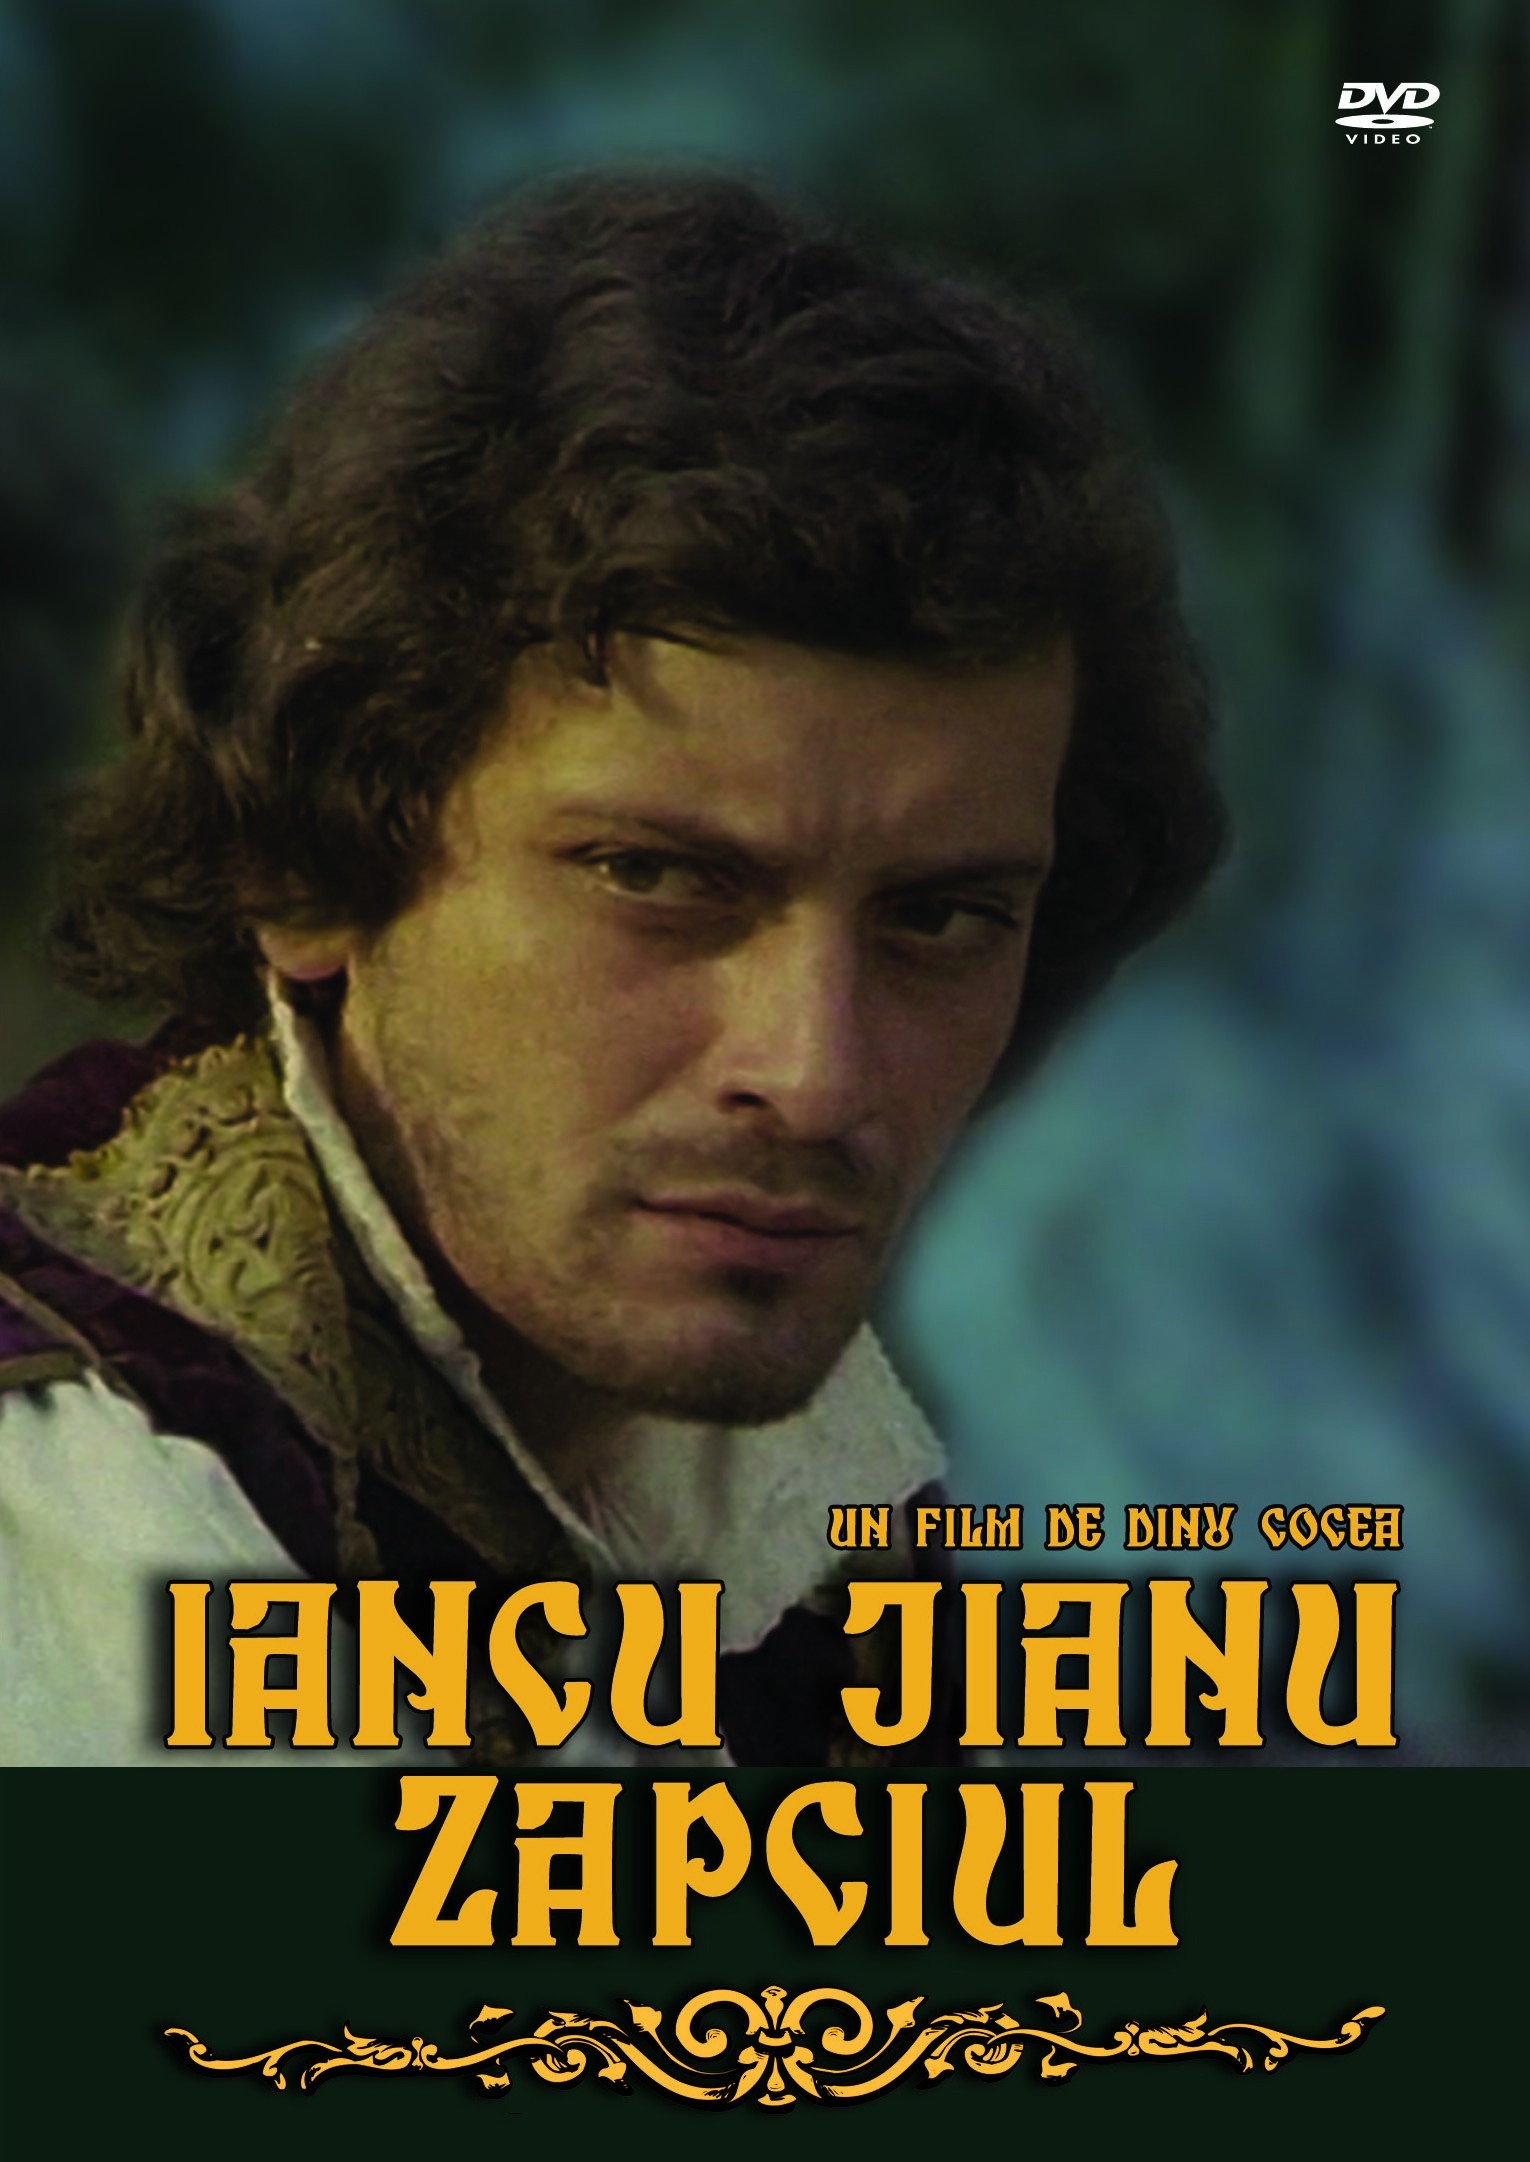 Iancu Jianu zapciul (1980) - Photo